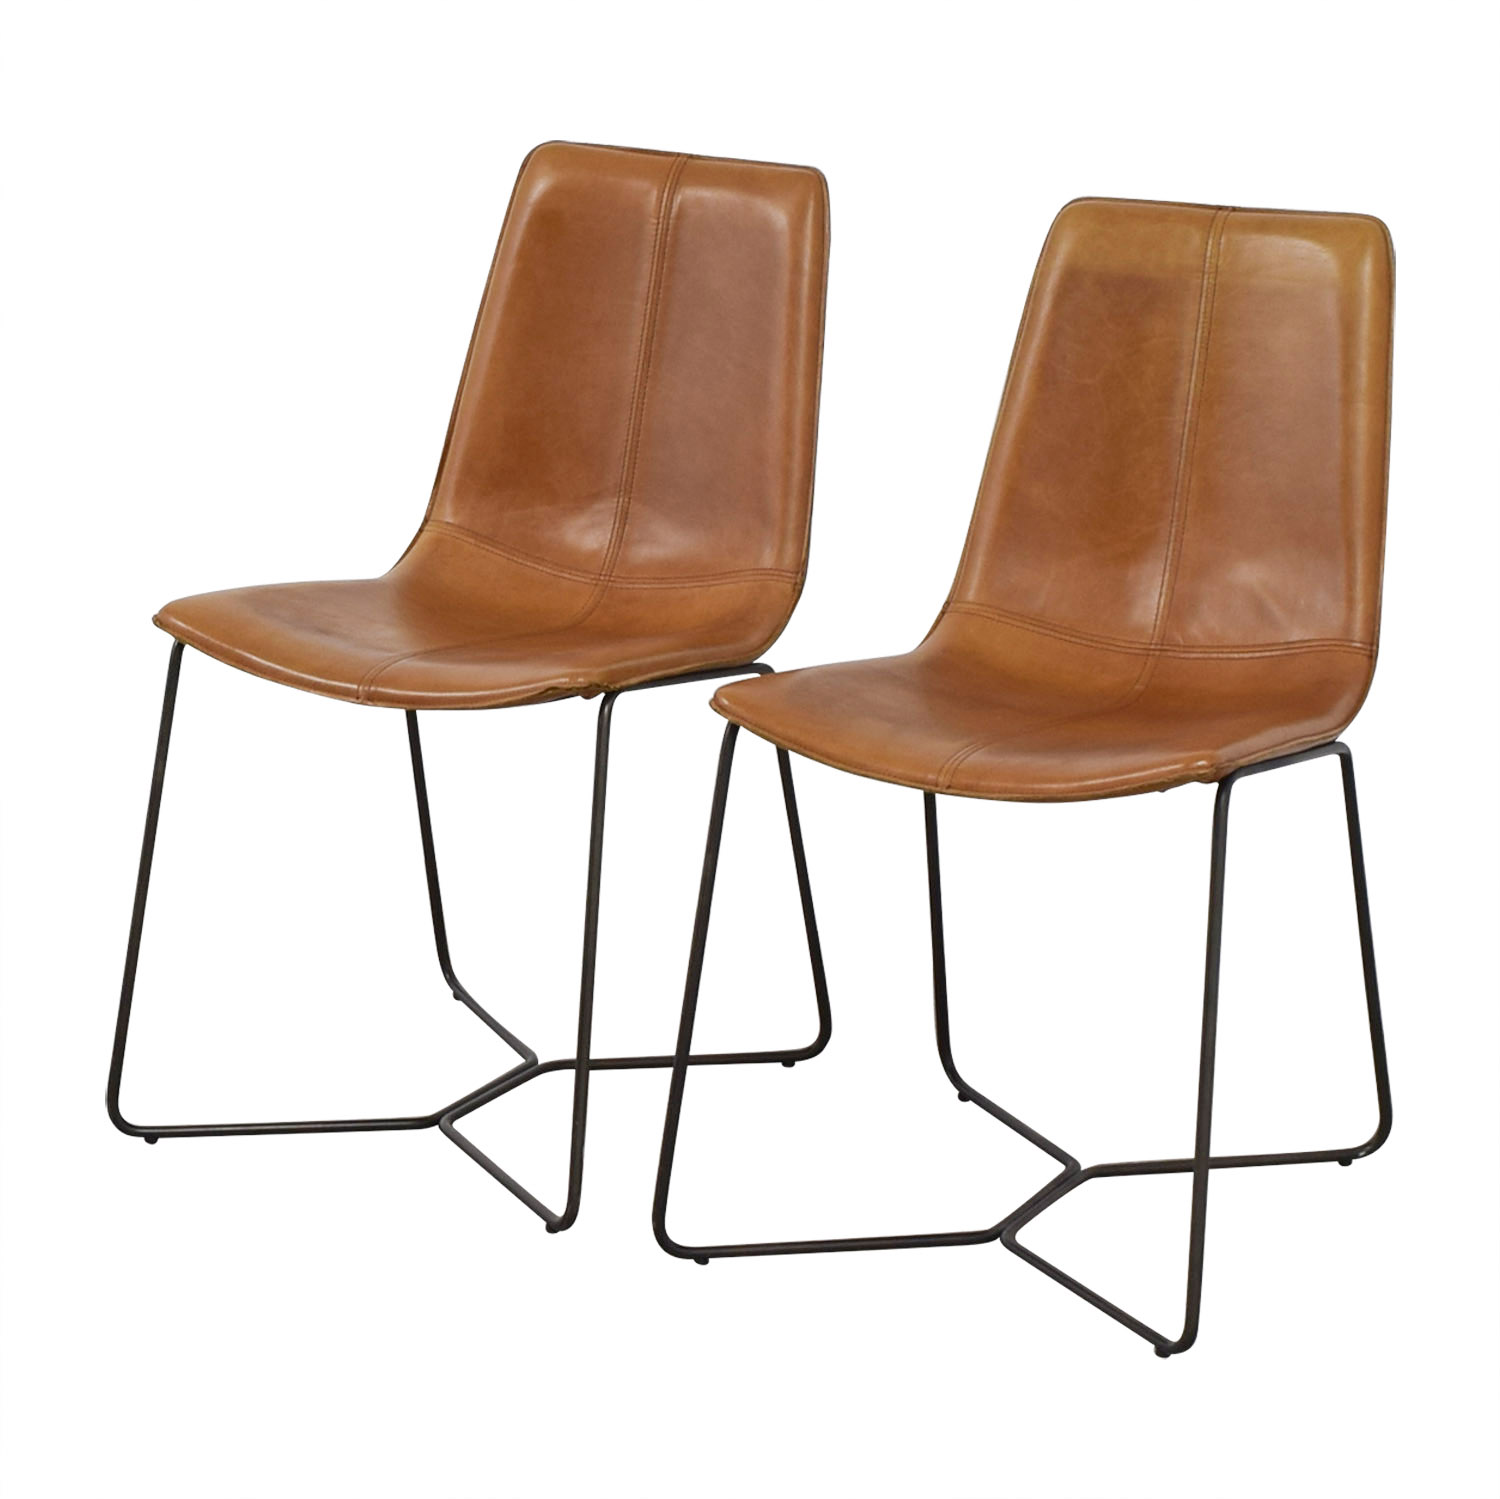 shop West Elm West Elm Leather Slope Dining Chairs online